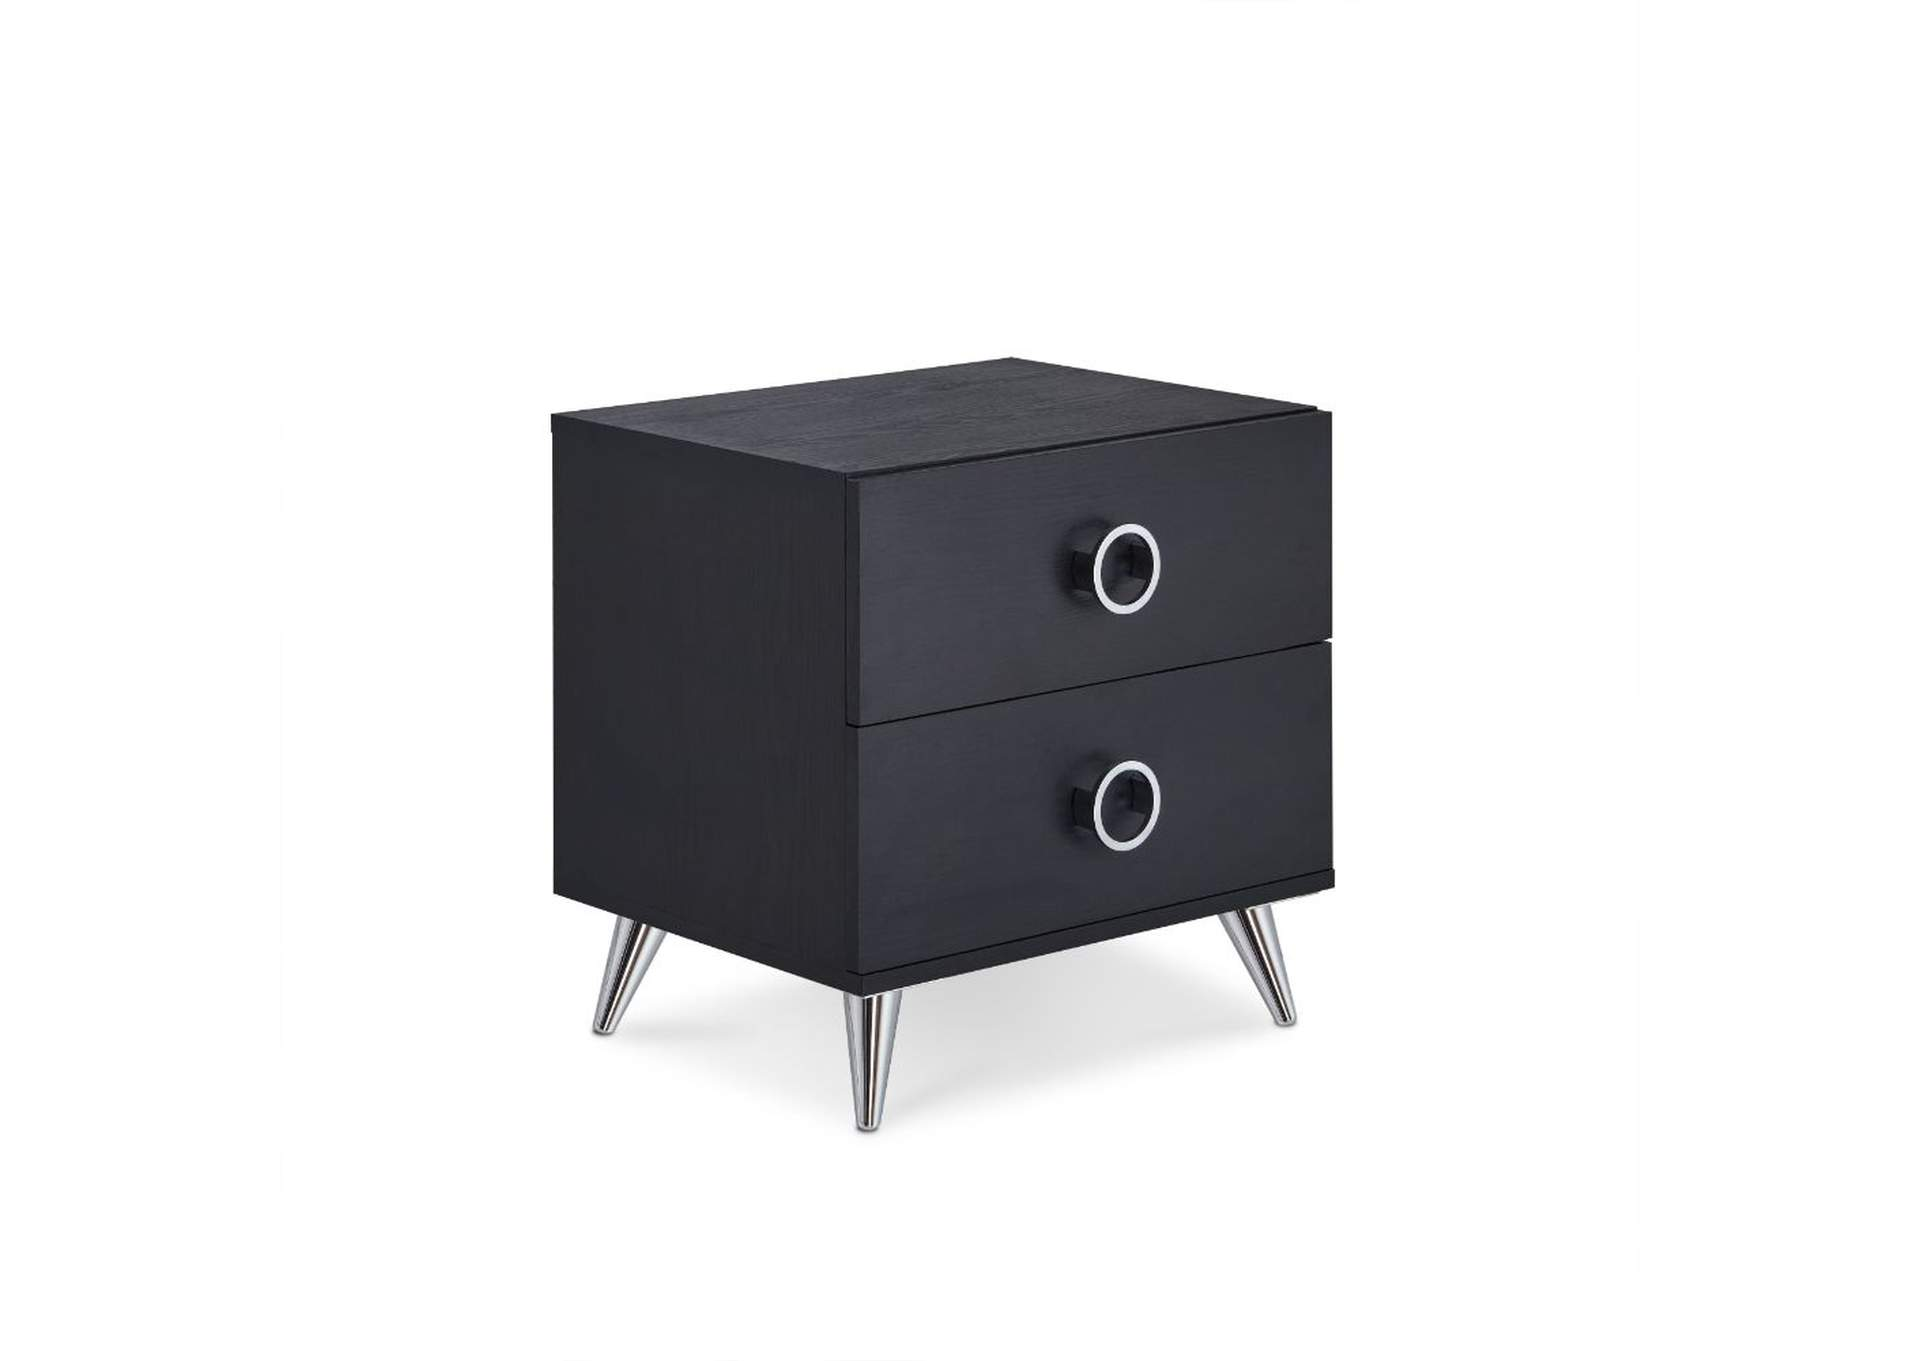 Elms Black Accent Table,Acme